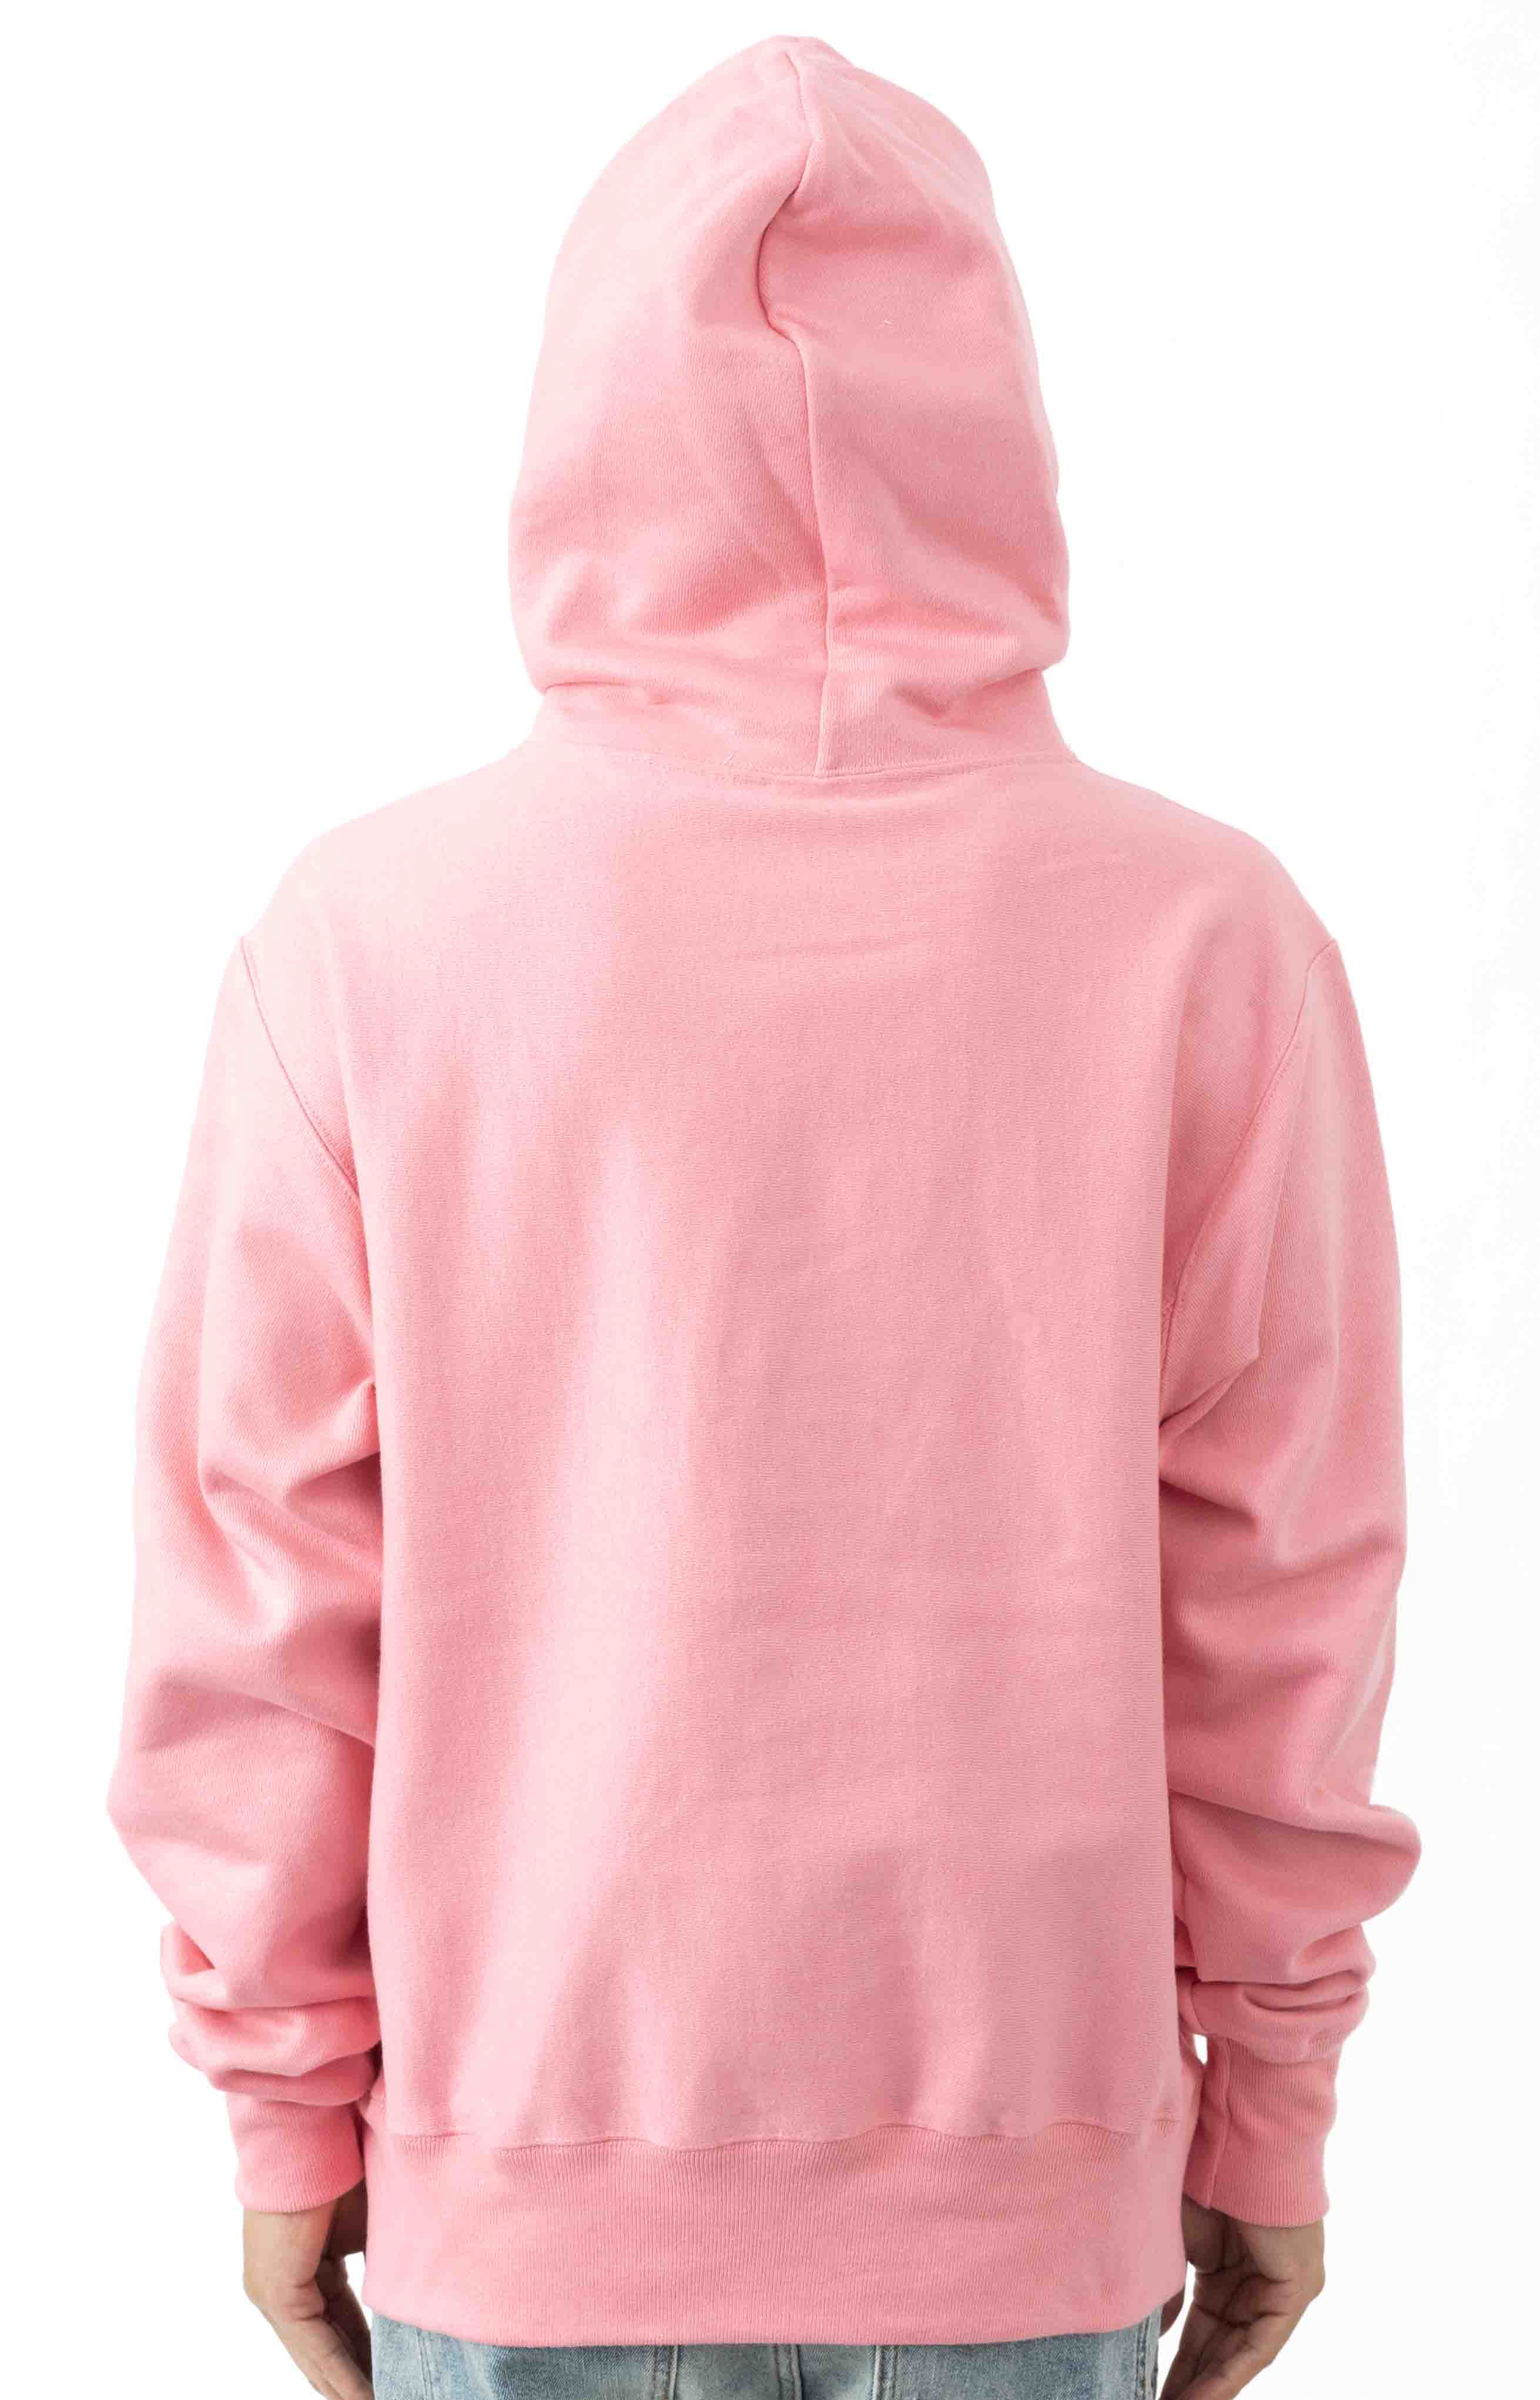 Reflective Logo Pullover Hoodie - Guava Pink 3